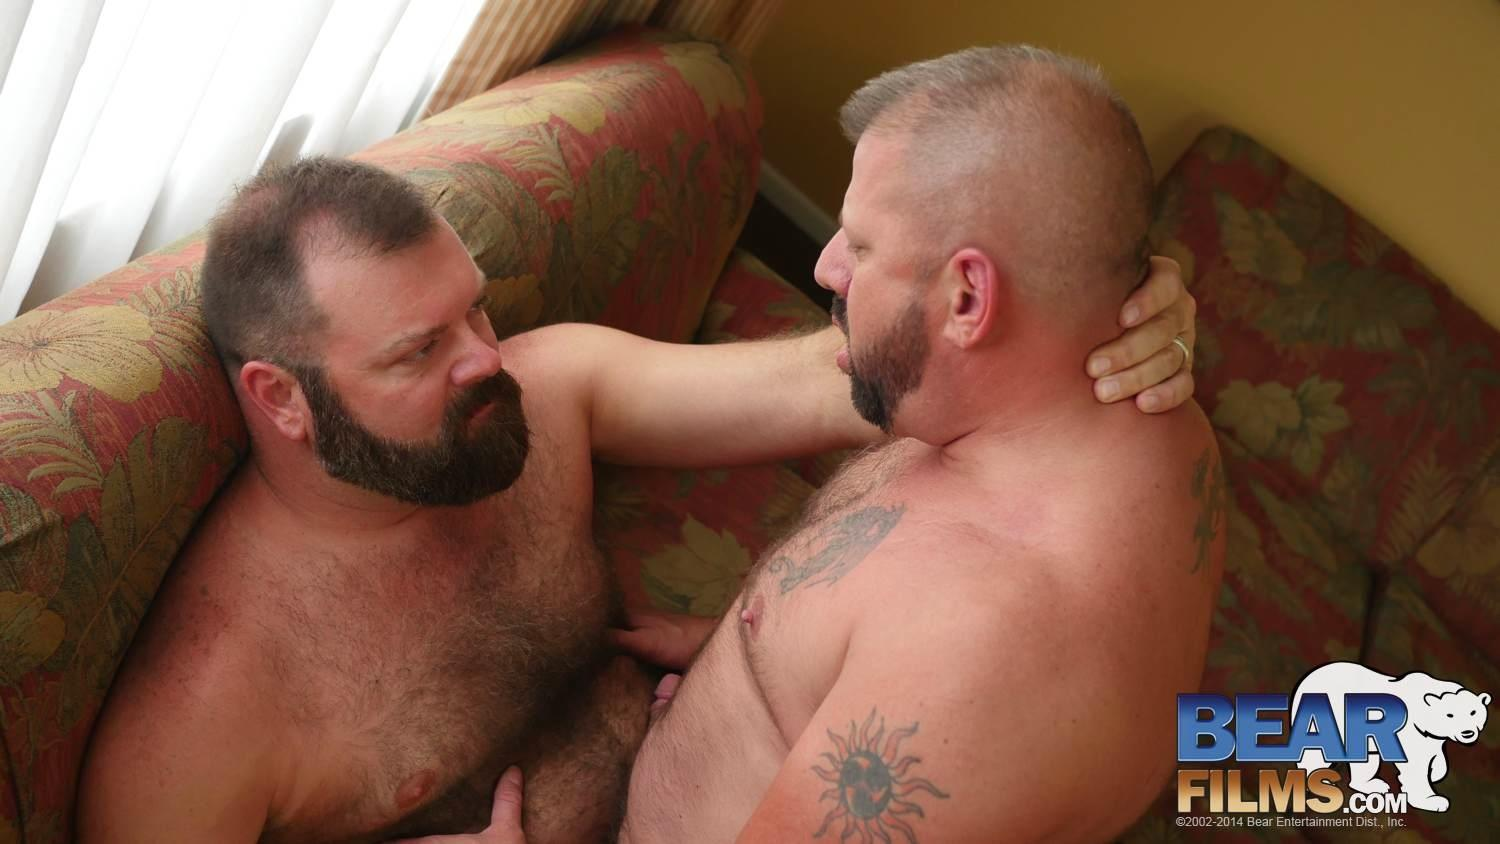 Bear-Films-Kroy-Bama-and-Cooper-Hill-Hairy-Chubby-Bears-Fucking-Bearback-Amateur-Gay-Porn-27 Hairy Chubby Bears Kroy Bama and Cooper Hill Raw Fucking